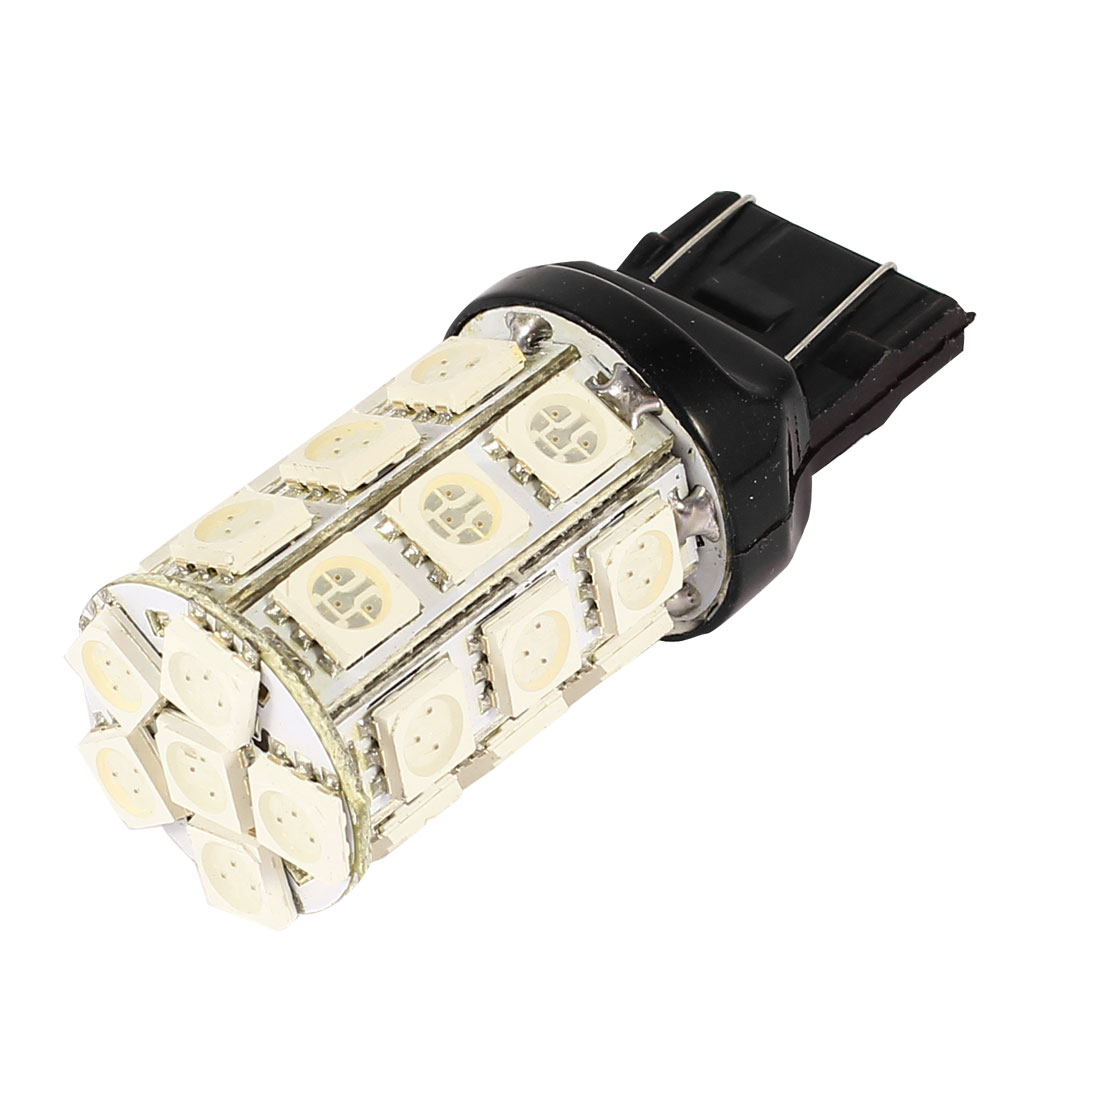 7440 992A T20 Red 27 SMD LED Bulbs DC 12V for Car Parking light